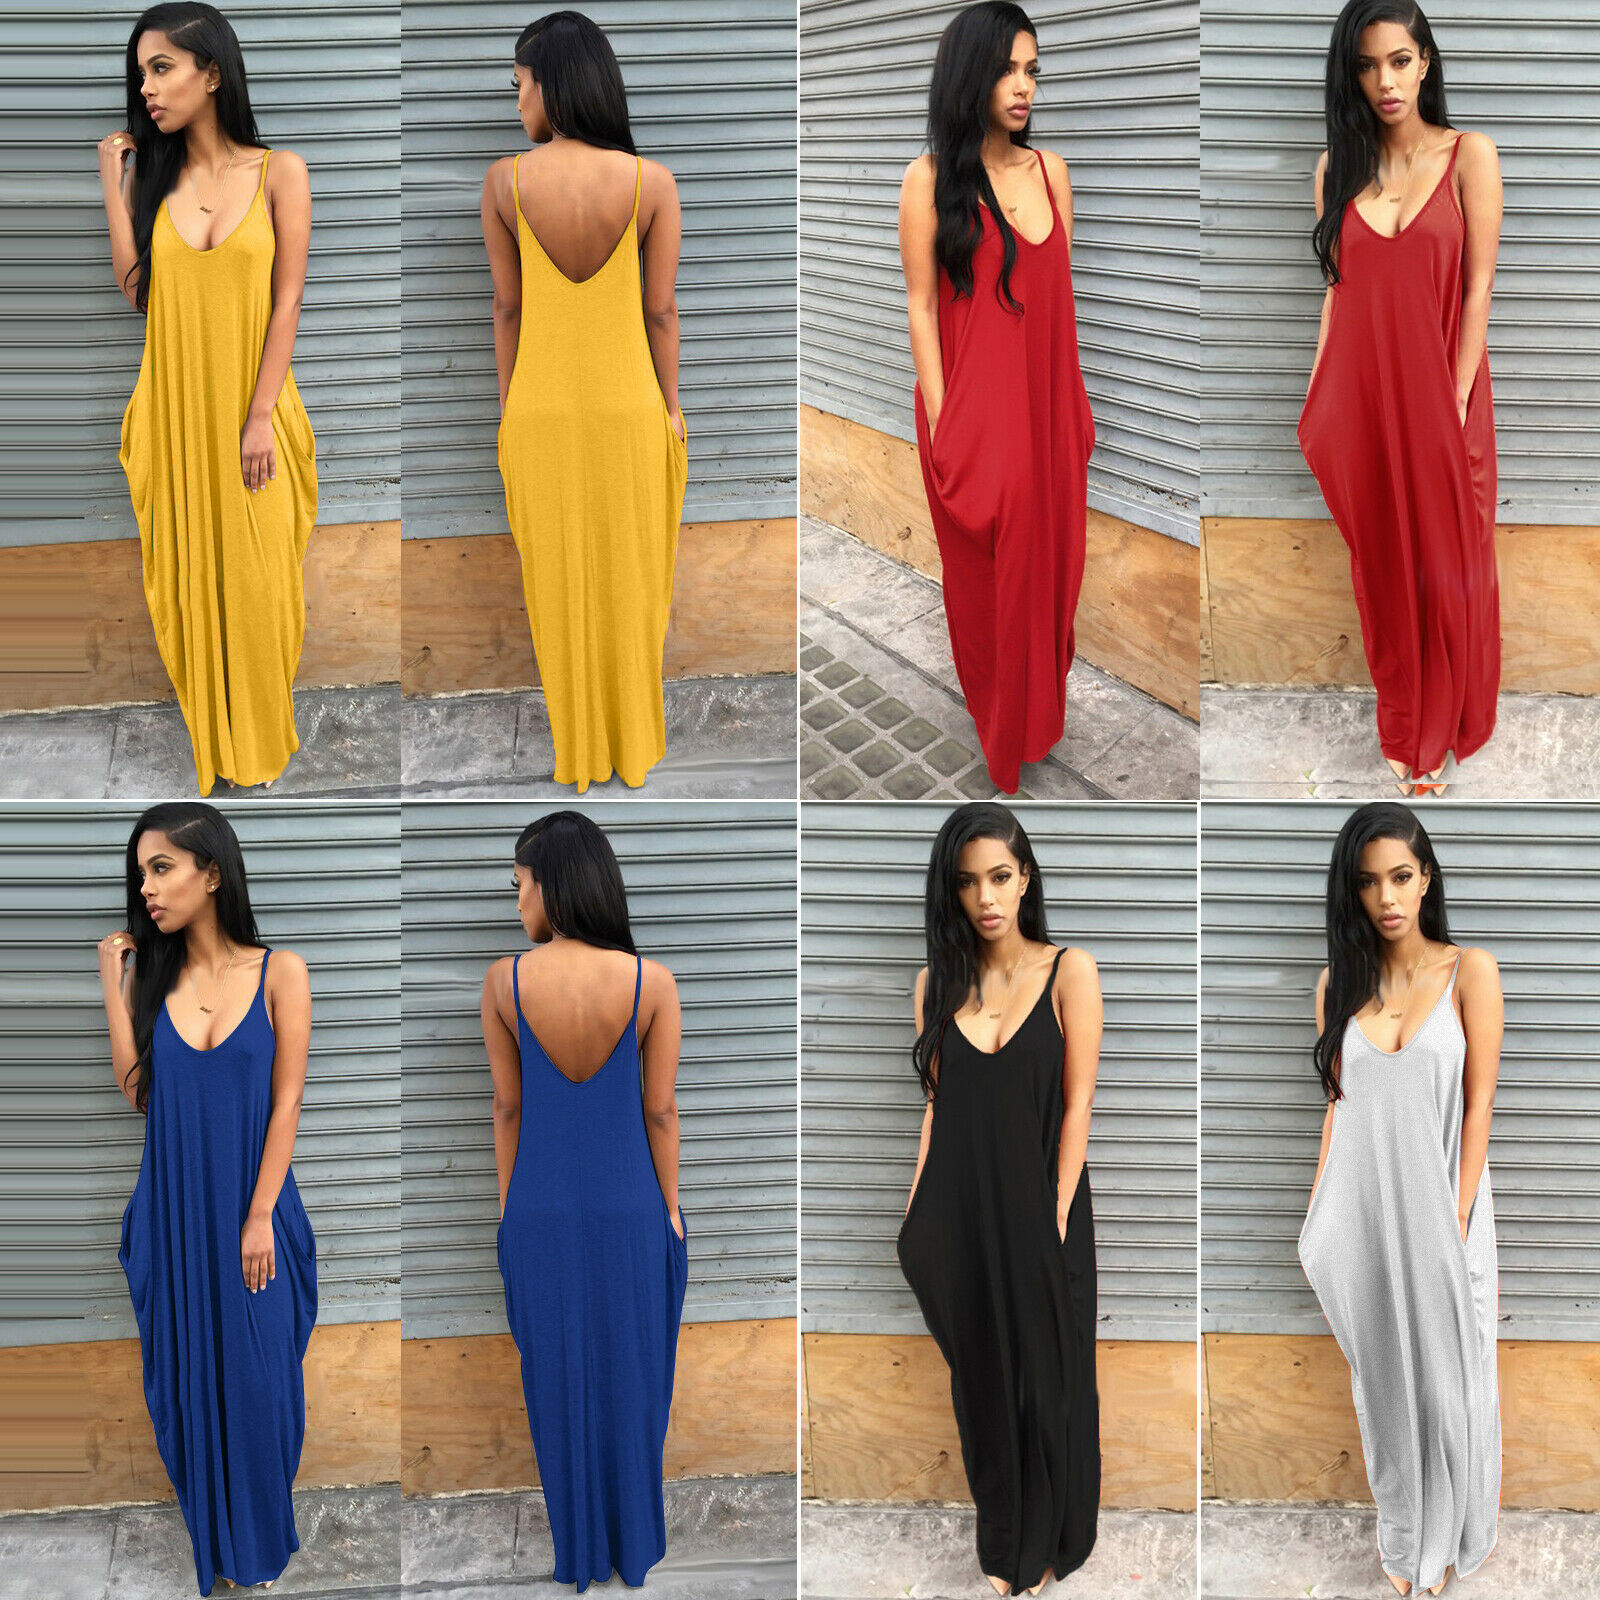 Women Ladies Maxi Dress Long Strappy Backless Loose Summer Beach Baggy Sundress 5